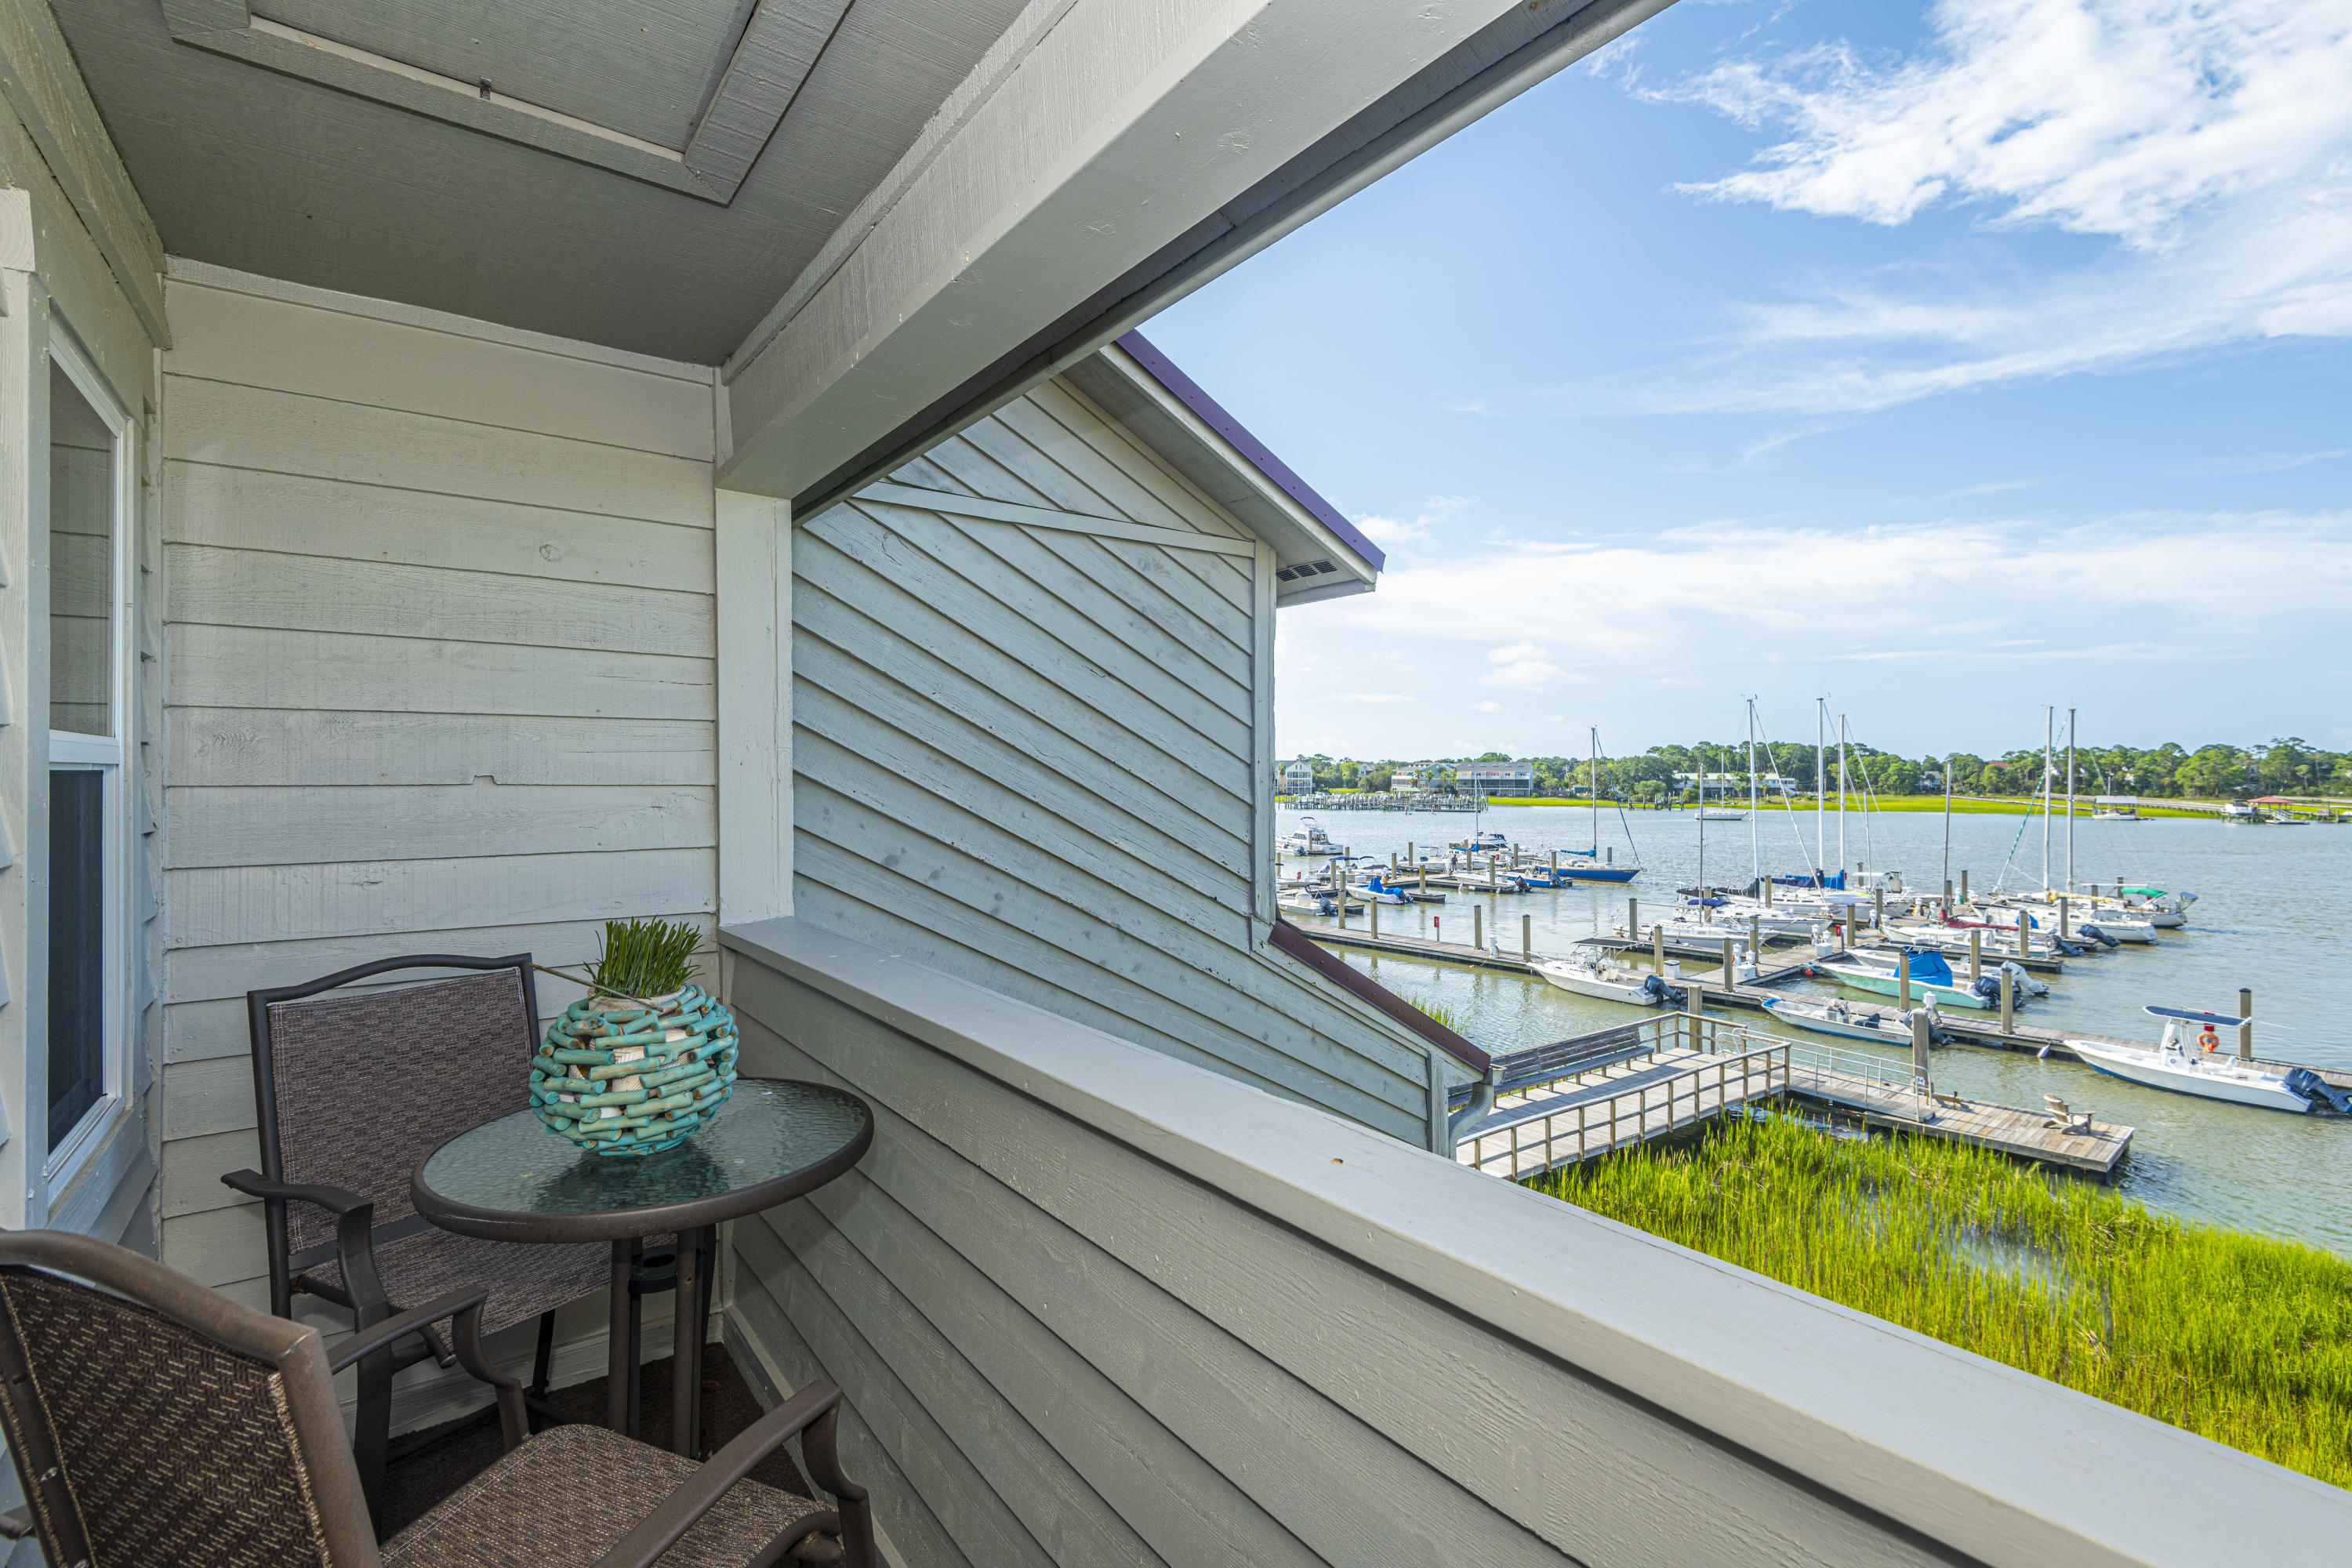 Mariners Cay Homes For Sale - 71 Mariners Cay, Folly Beach, SC - 0